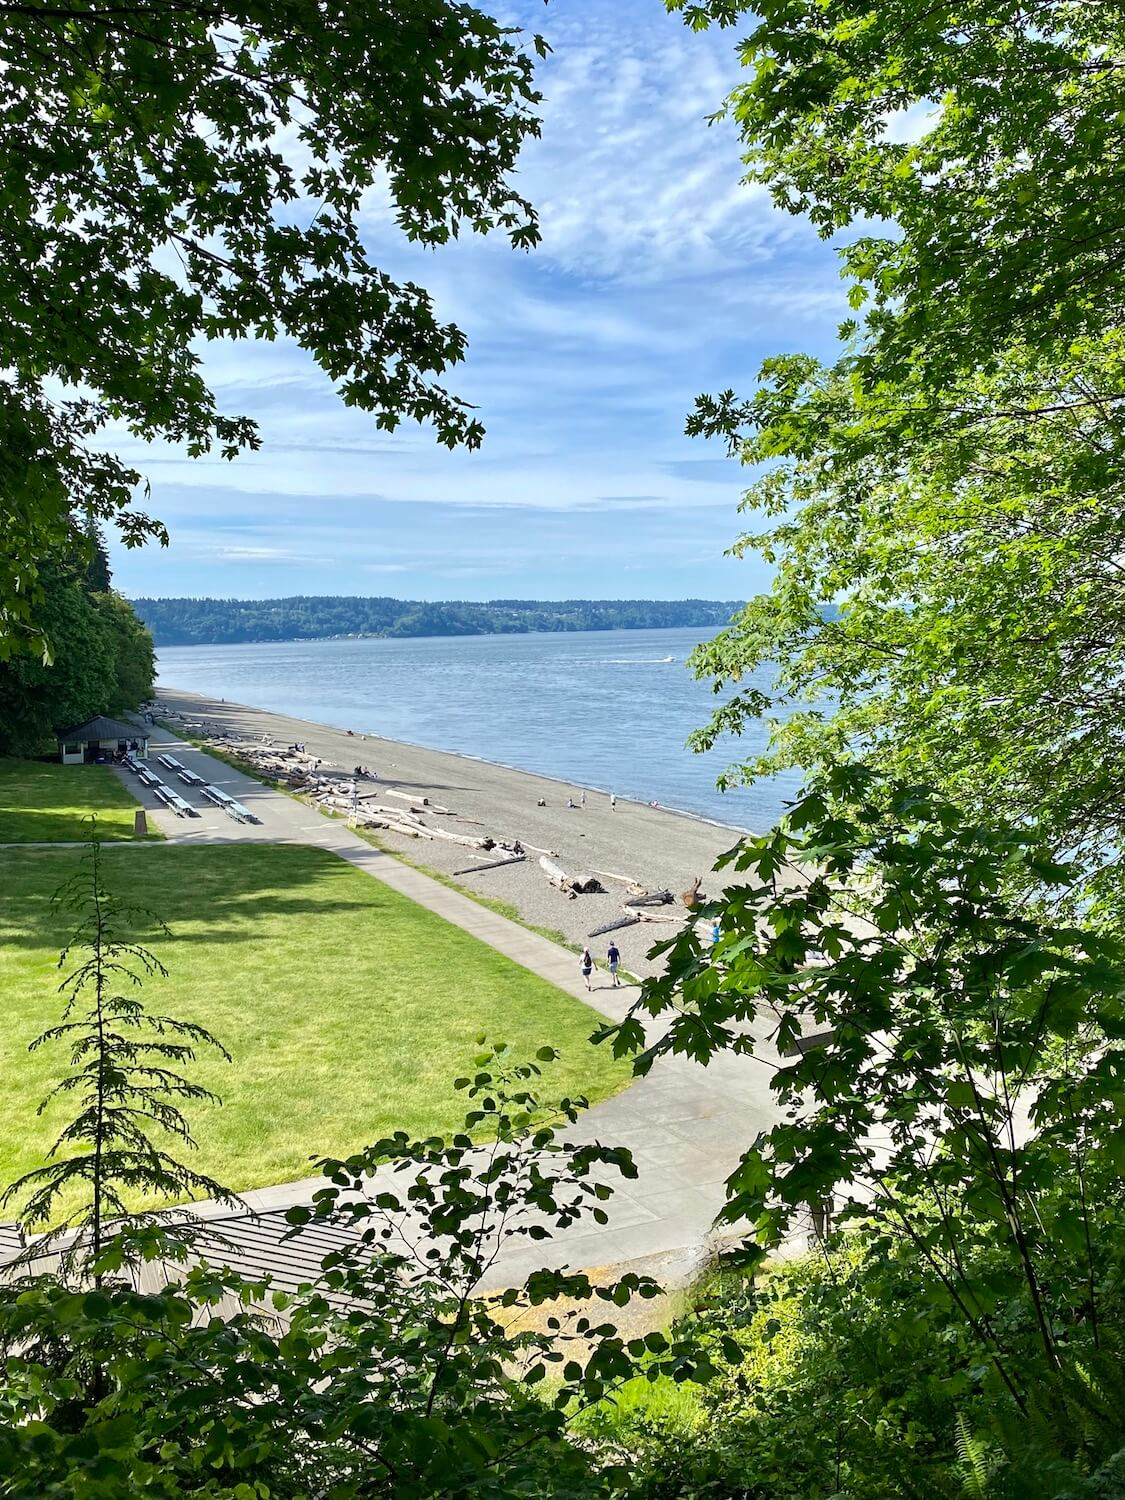 A view of Owen Beach at Point Defiance Park reveals a long stretch of pebble beach as seen through several green leafy trees.